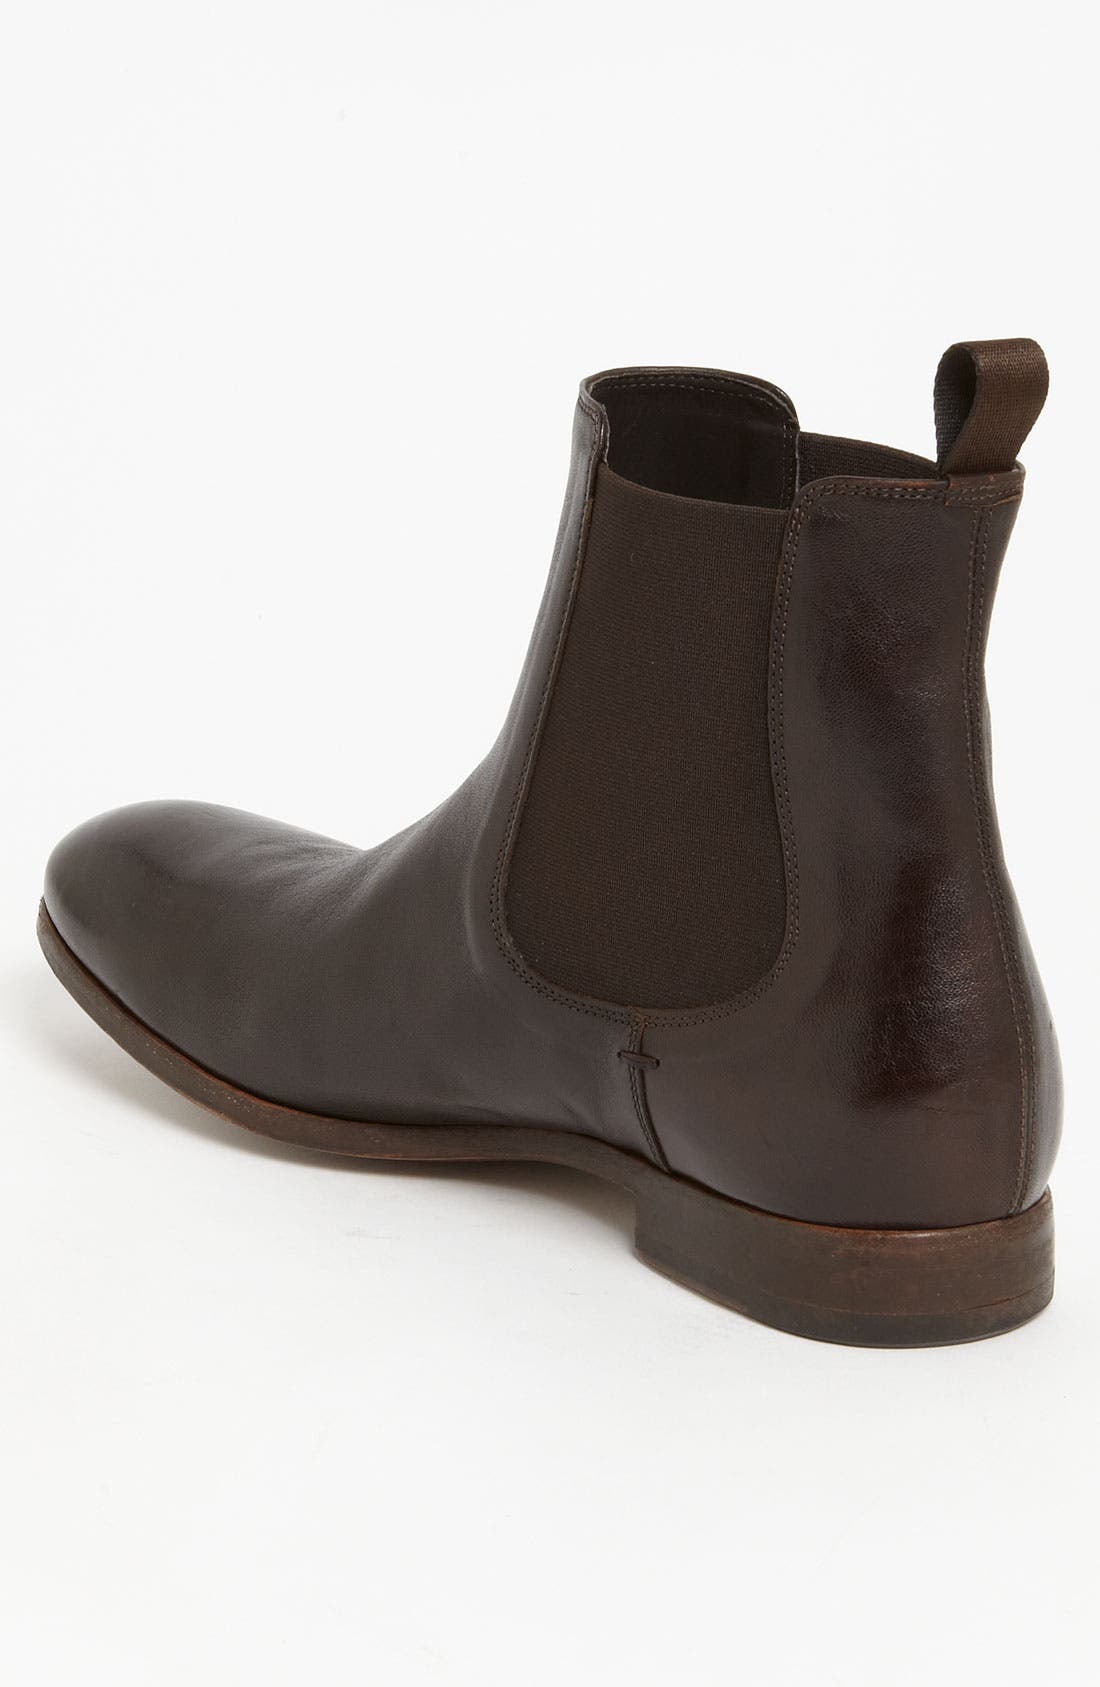 Alternate Image 2  - Paul Smith 'Otter' Chelsea Boot